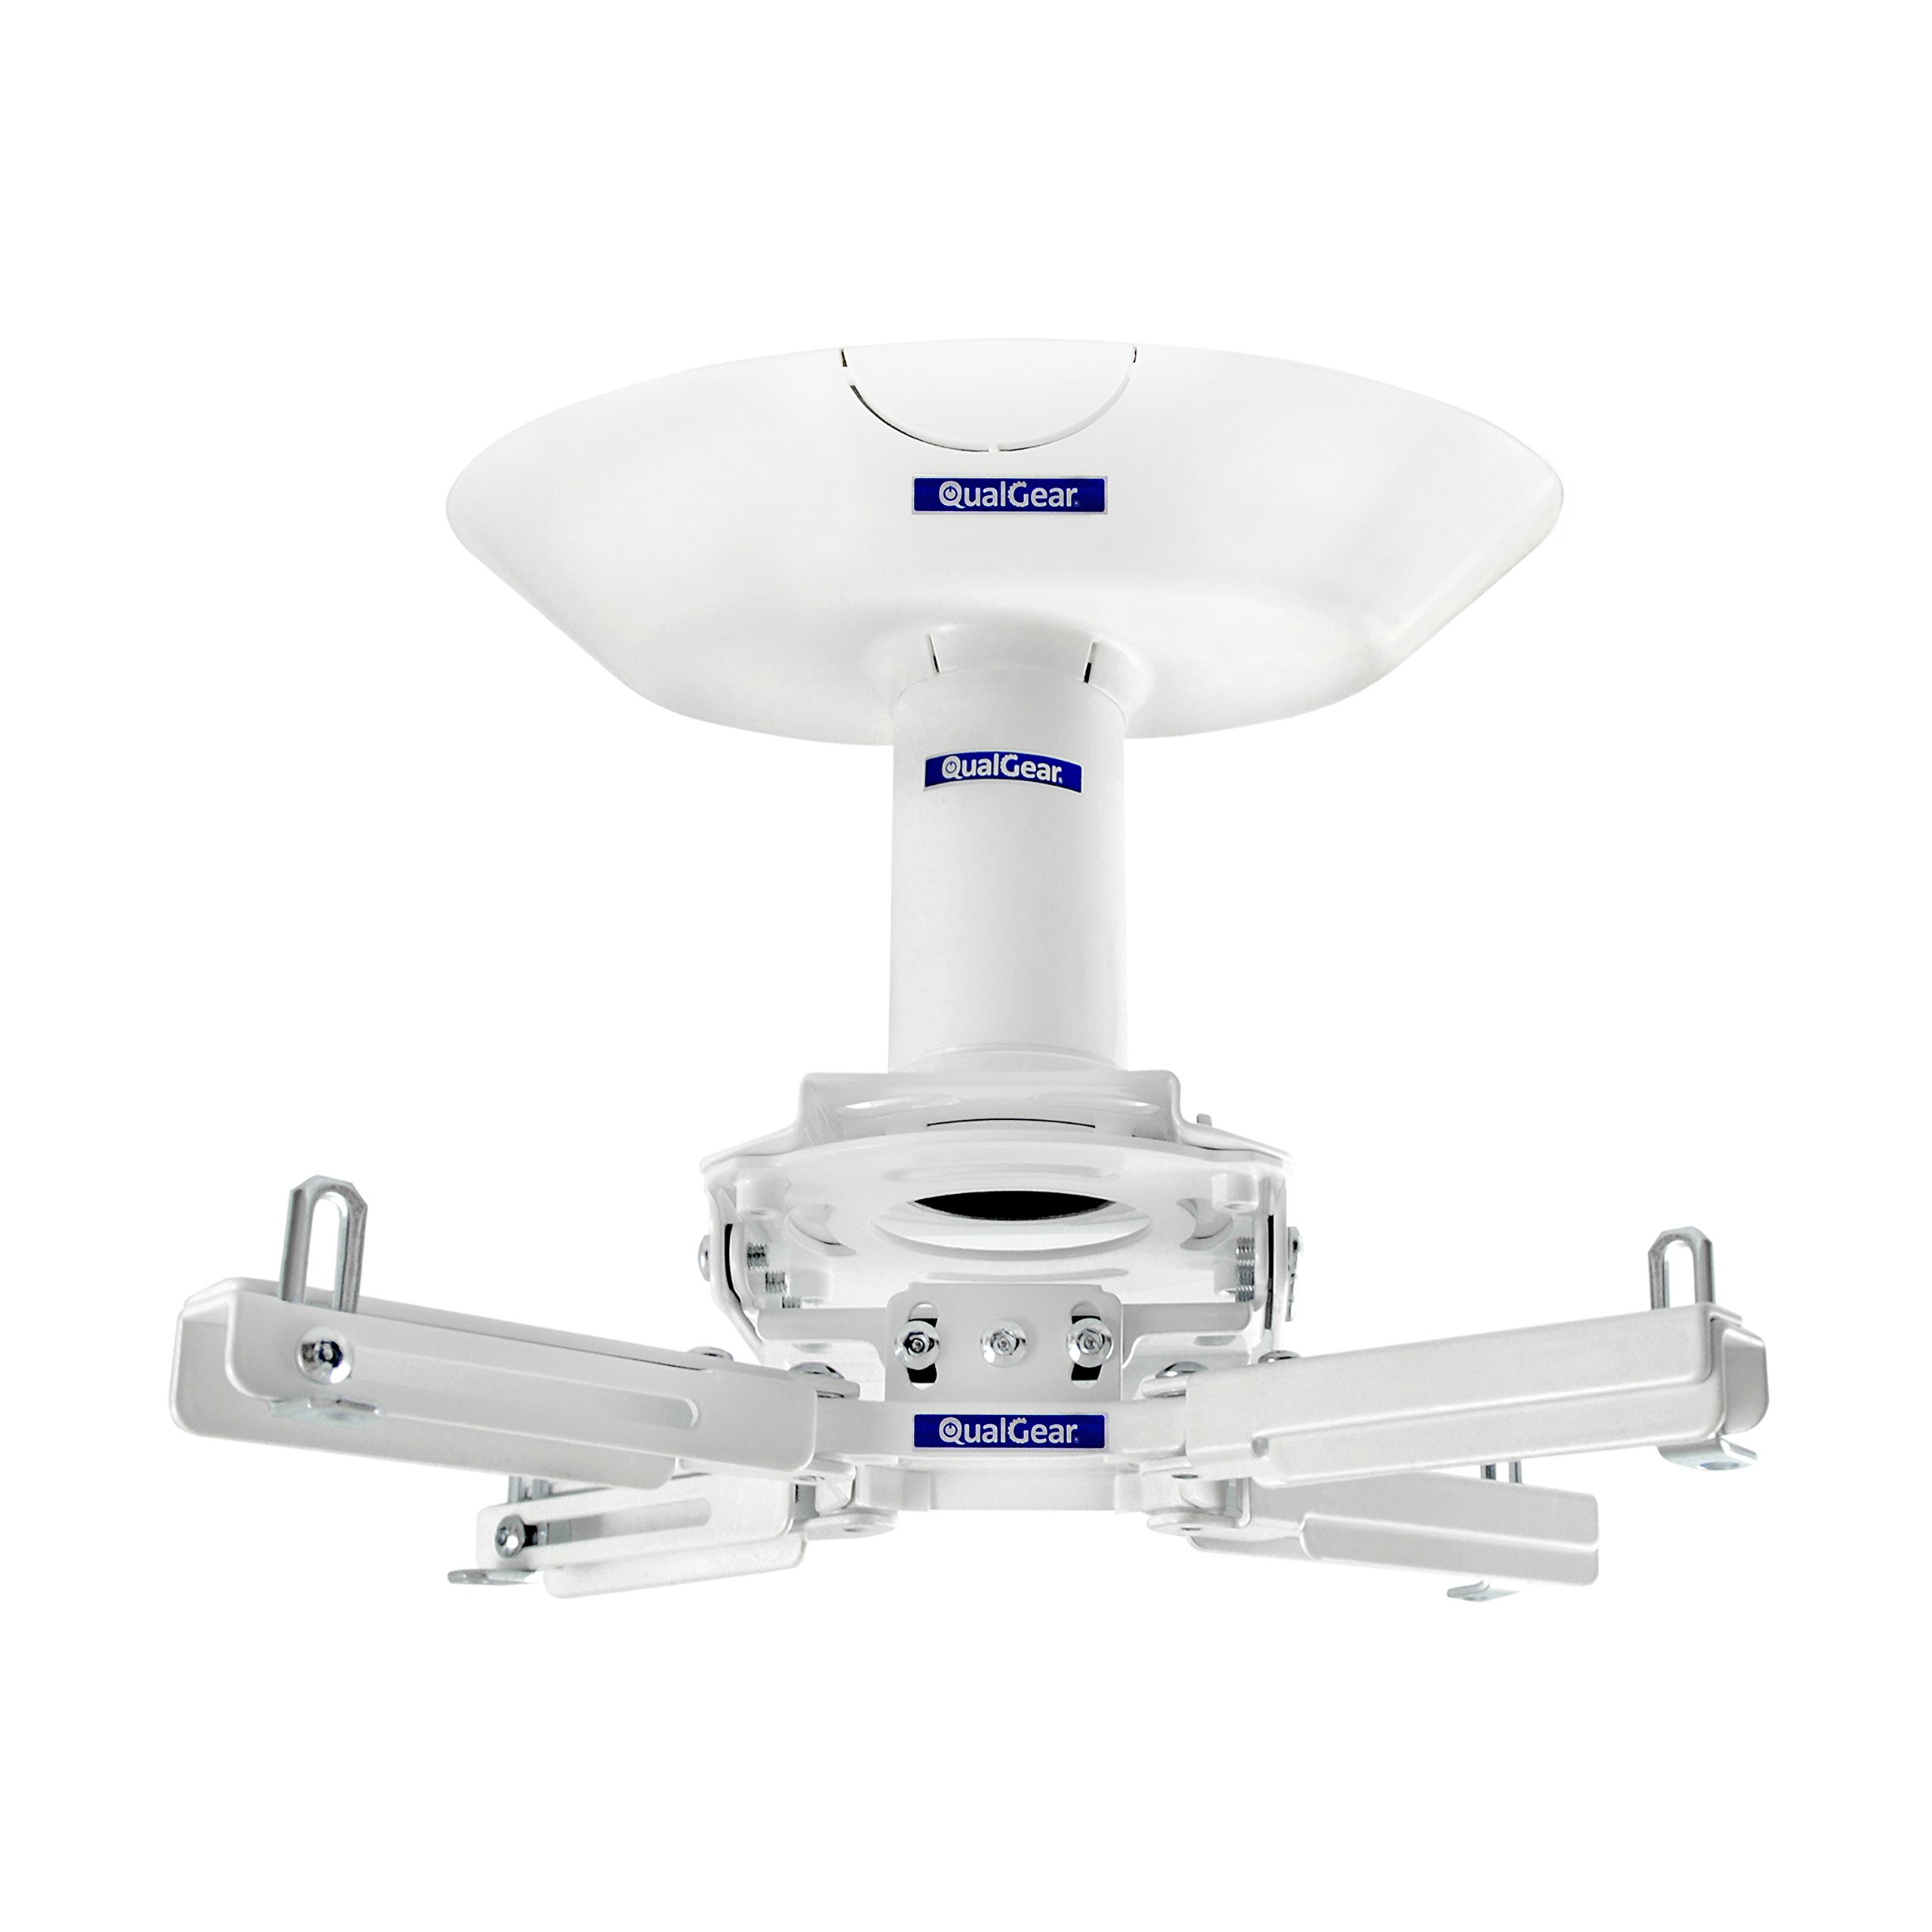 QualGear Pro-AV QG-KIT-CA-3IN-W Projector Mount Kit Accessory Single Joist Ceiling Adapter, 3'' 1.5'', White